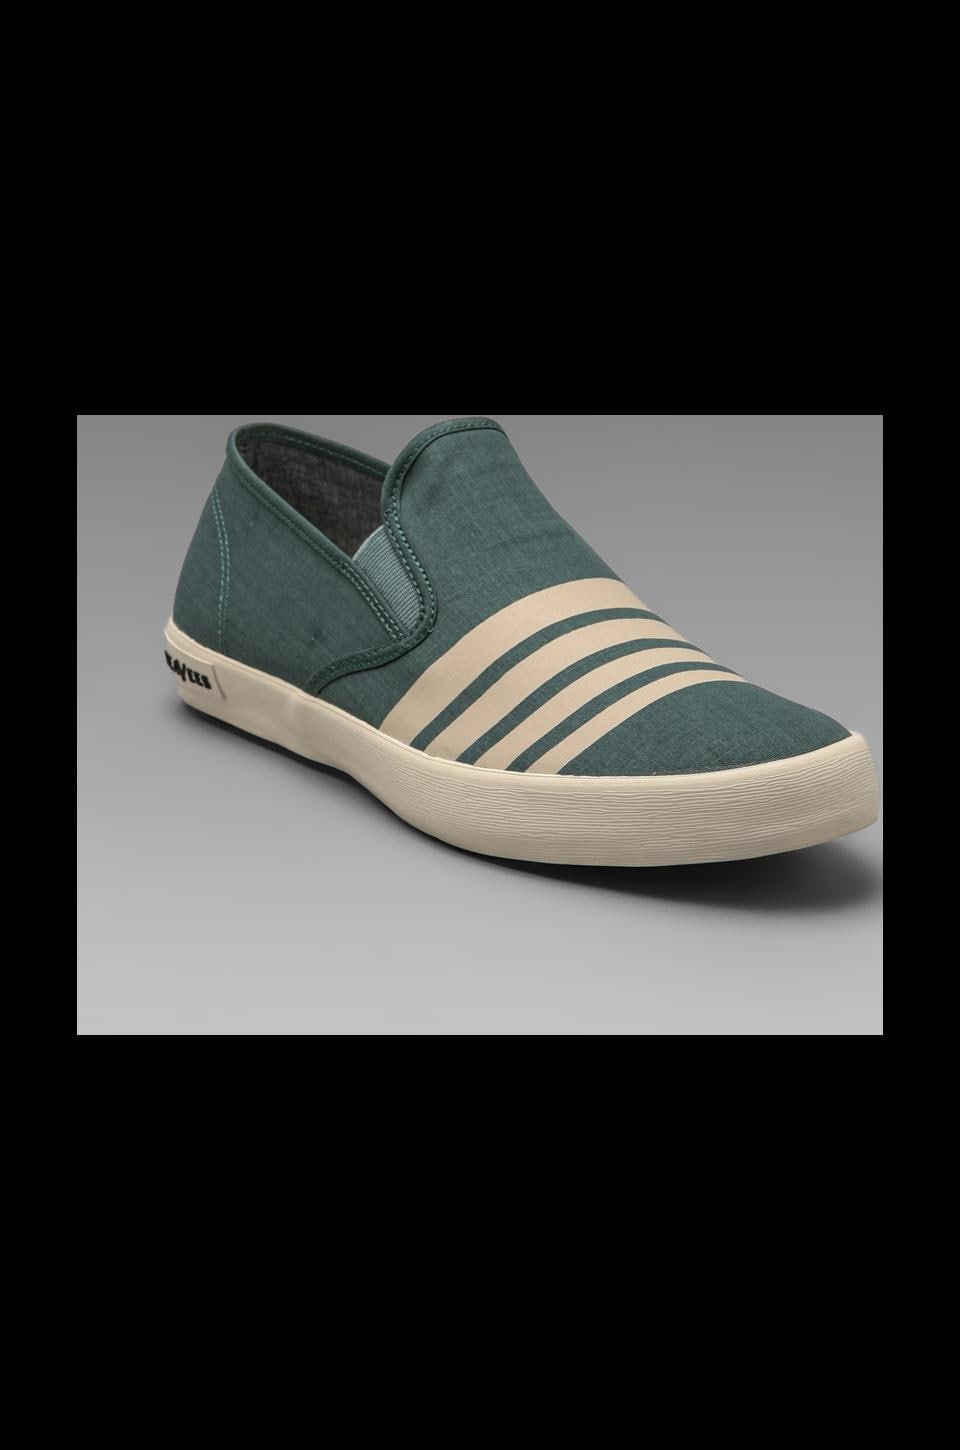 SeaVees Baja Slip-on Board Stripe in Seagrass